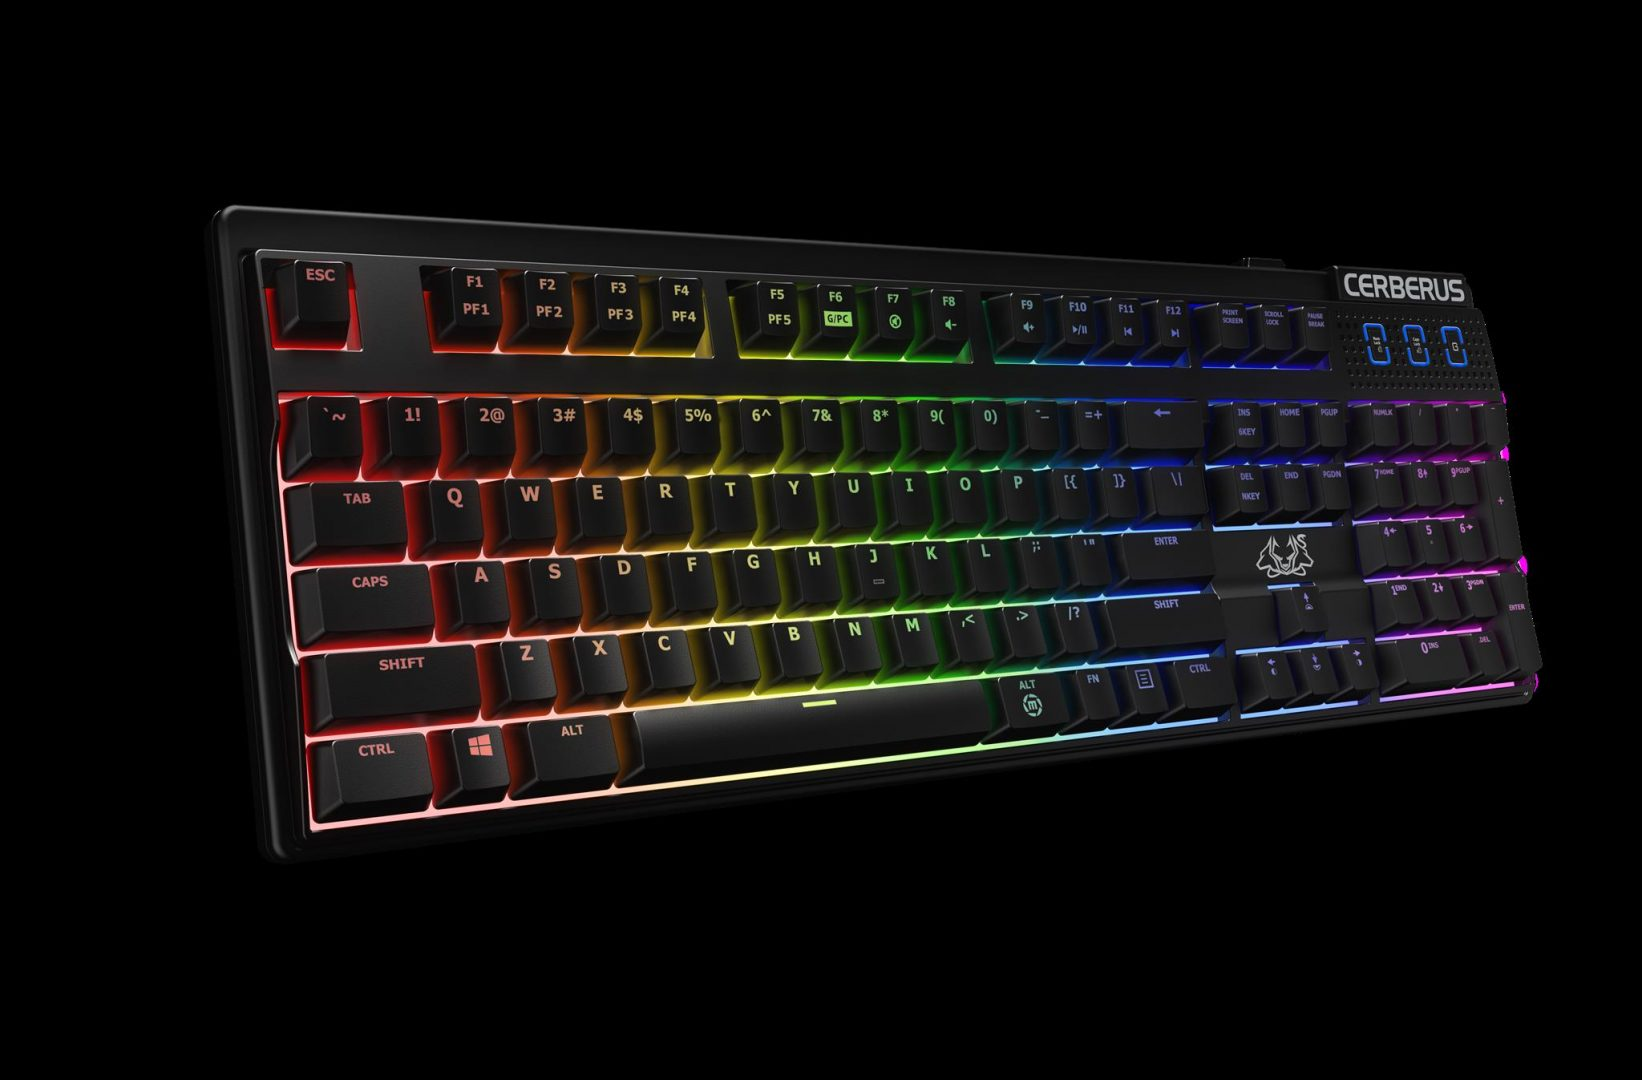 Cerberus Mech RGB gaming keyboard-1